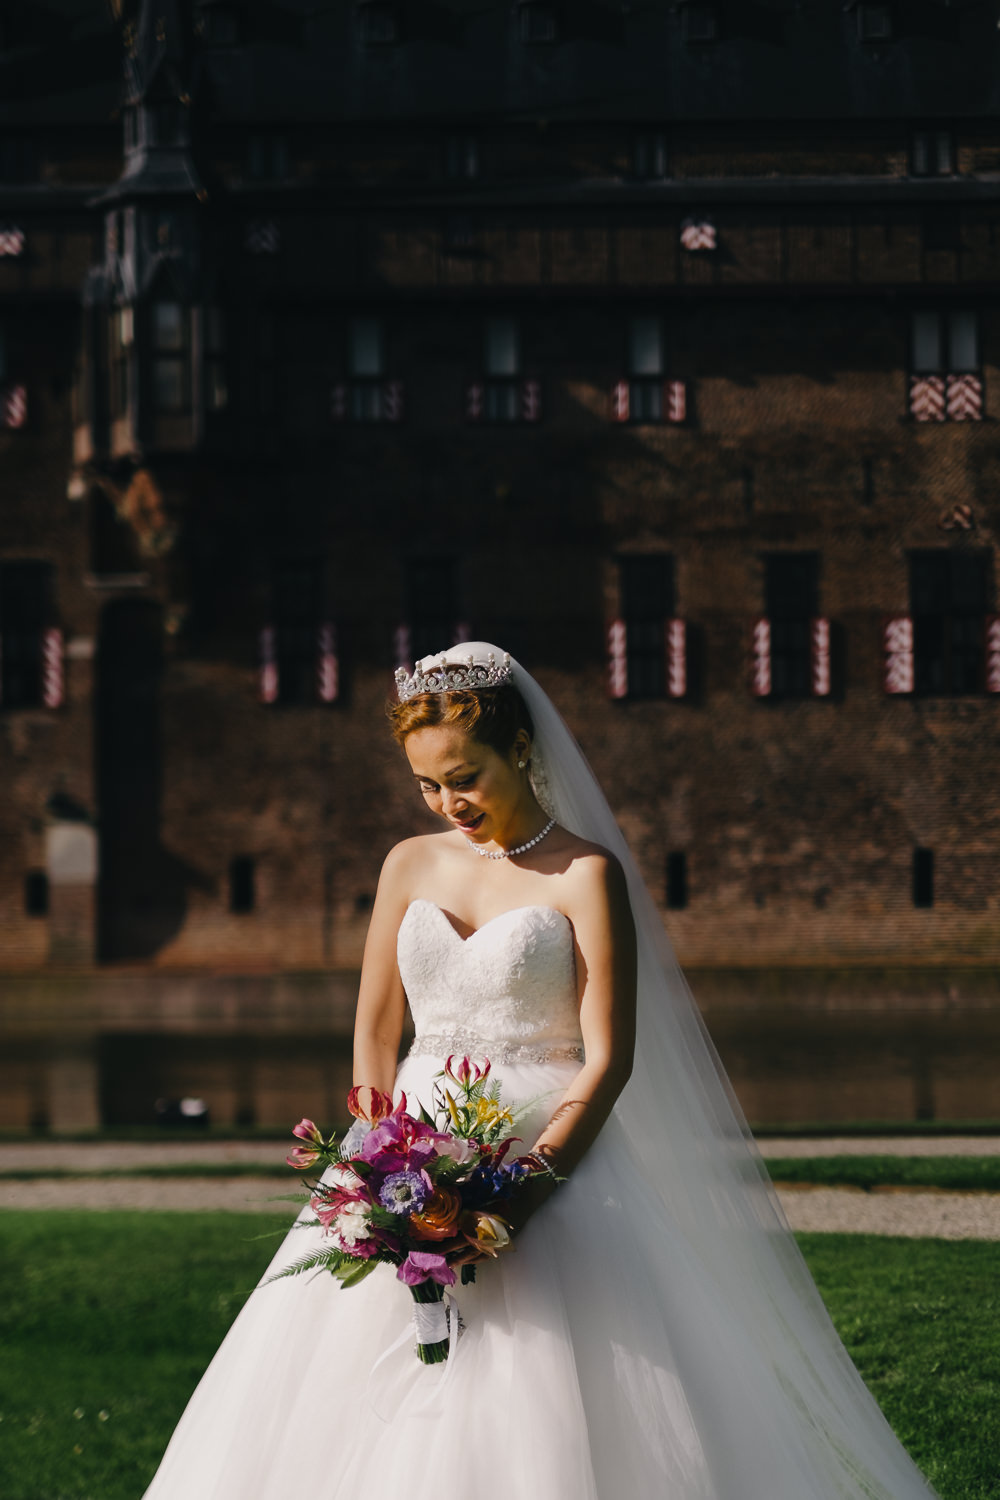 wedding photography amsterdam by bruidsfotograaf mark hadden